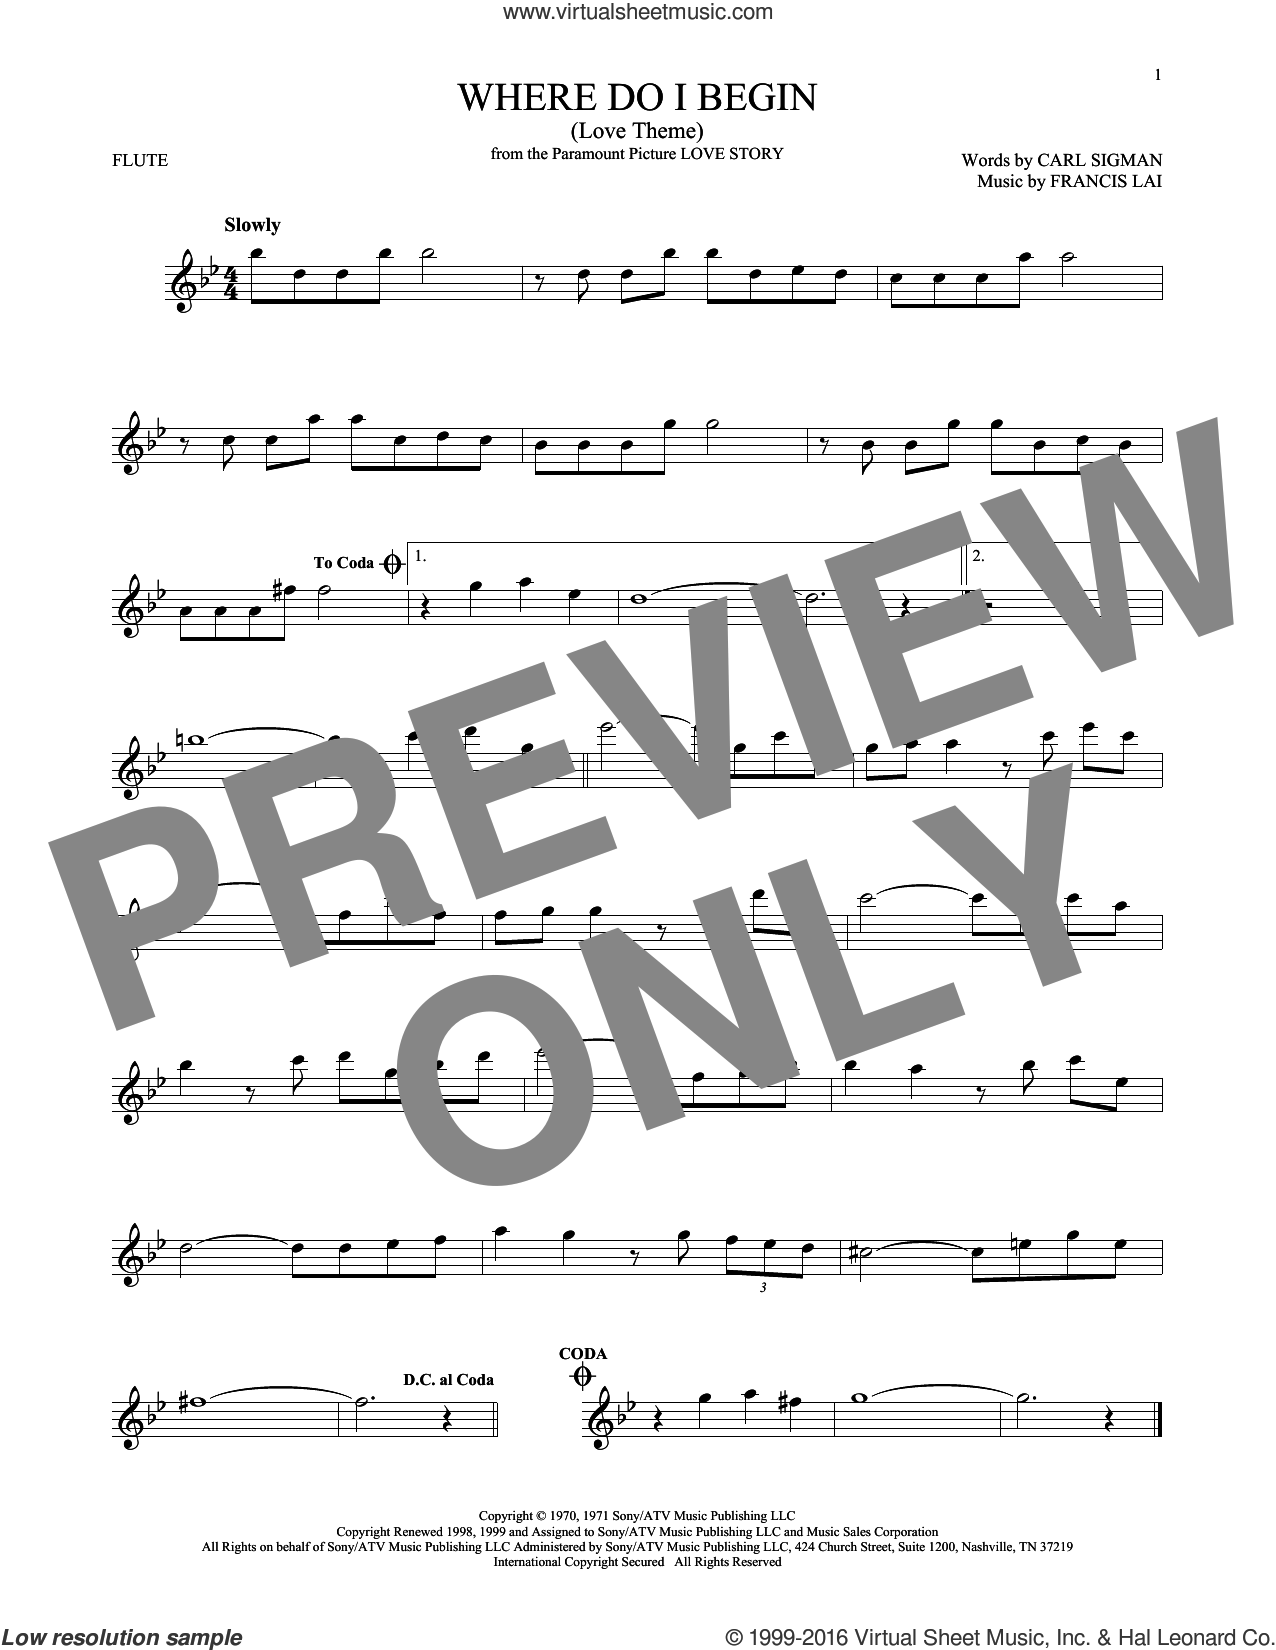 Where Do I Begin (Love Theme) sheet music for flute solo by Andy Williams, Carl Sigman and Francis Lai. Score Image Preview.